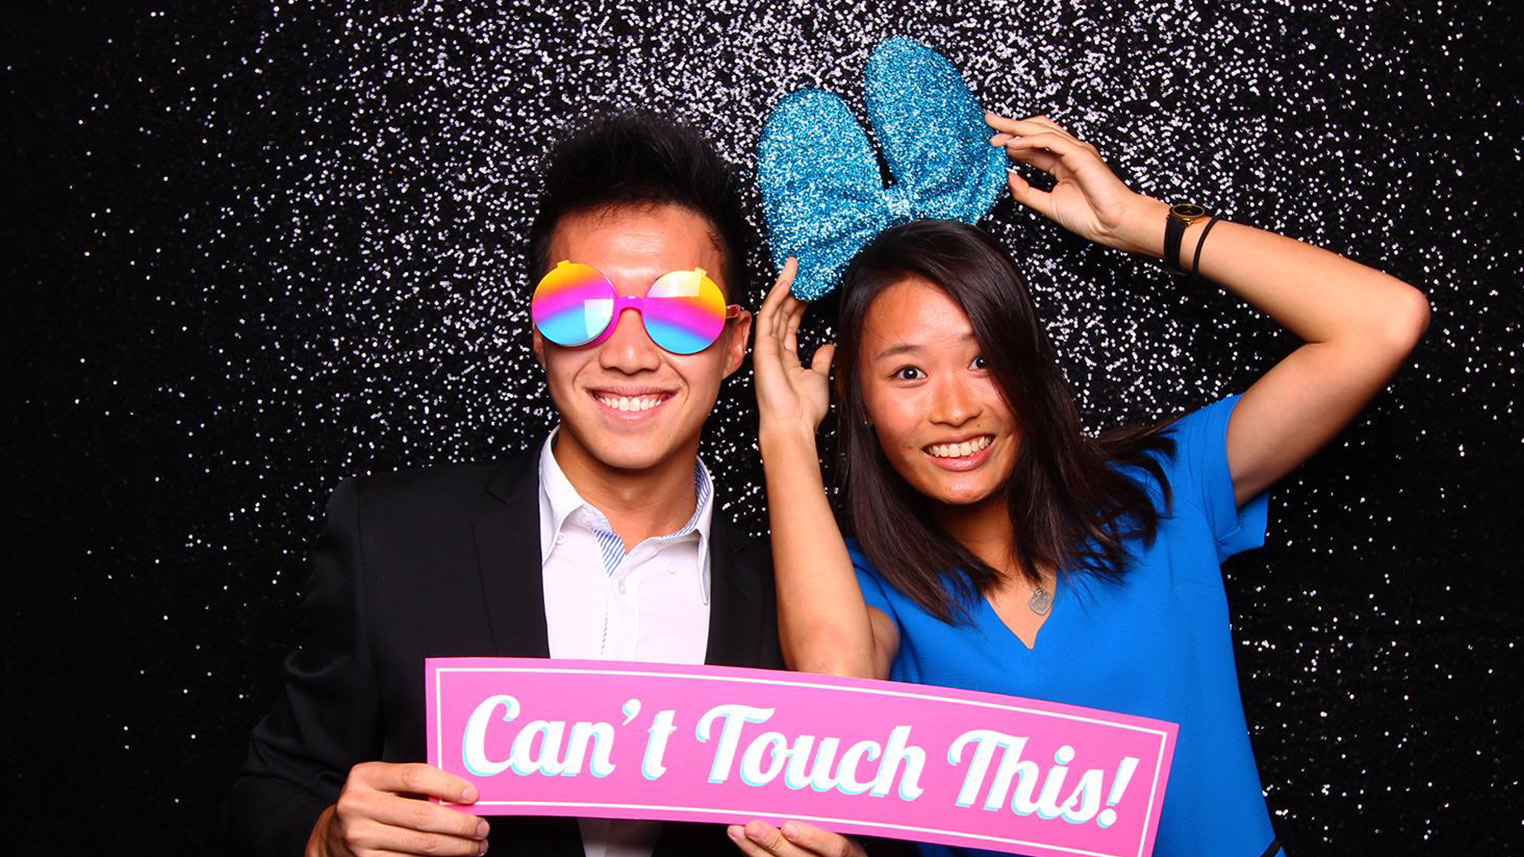 Fourstops • Singapore Photobooth • Elson & Sarah Wedding Photobooth